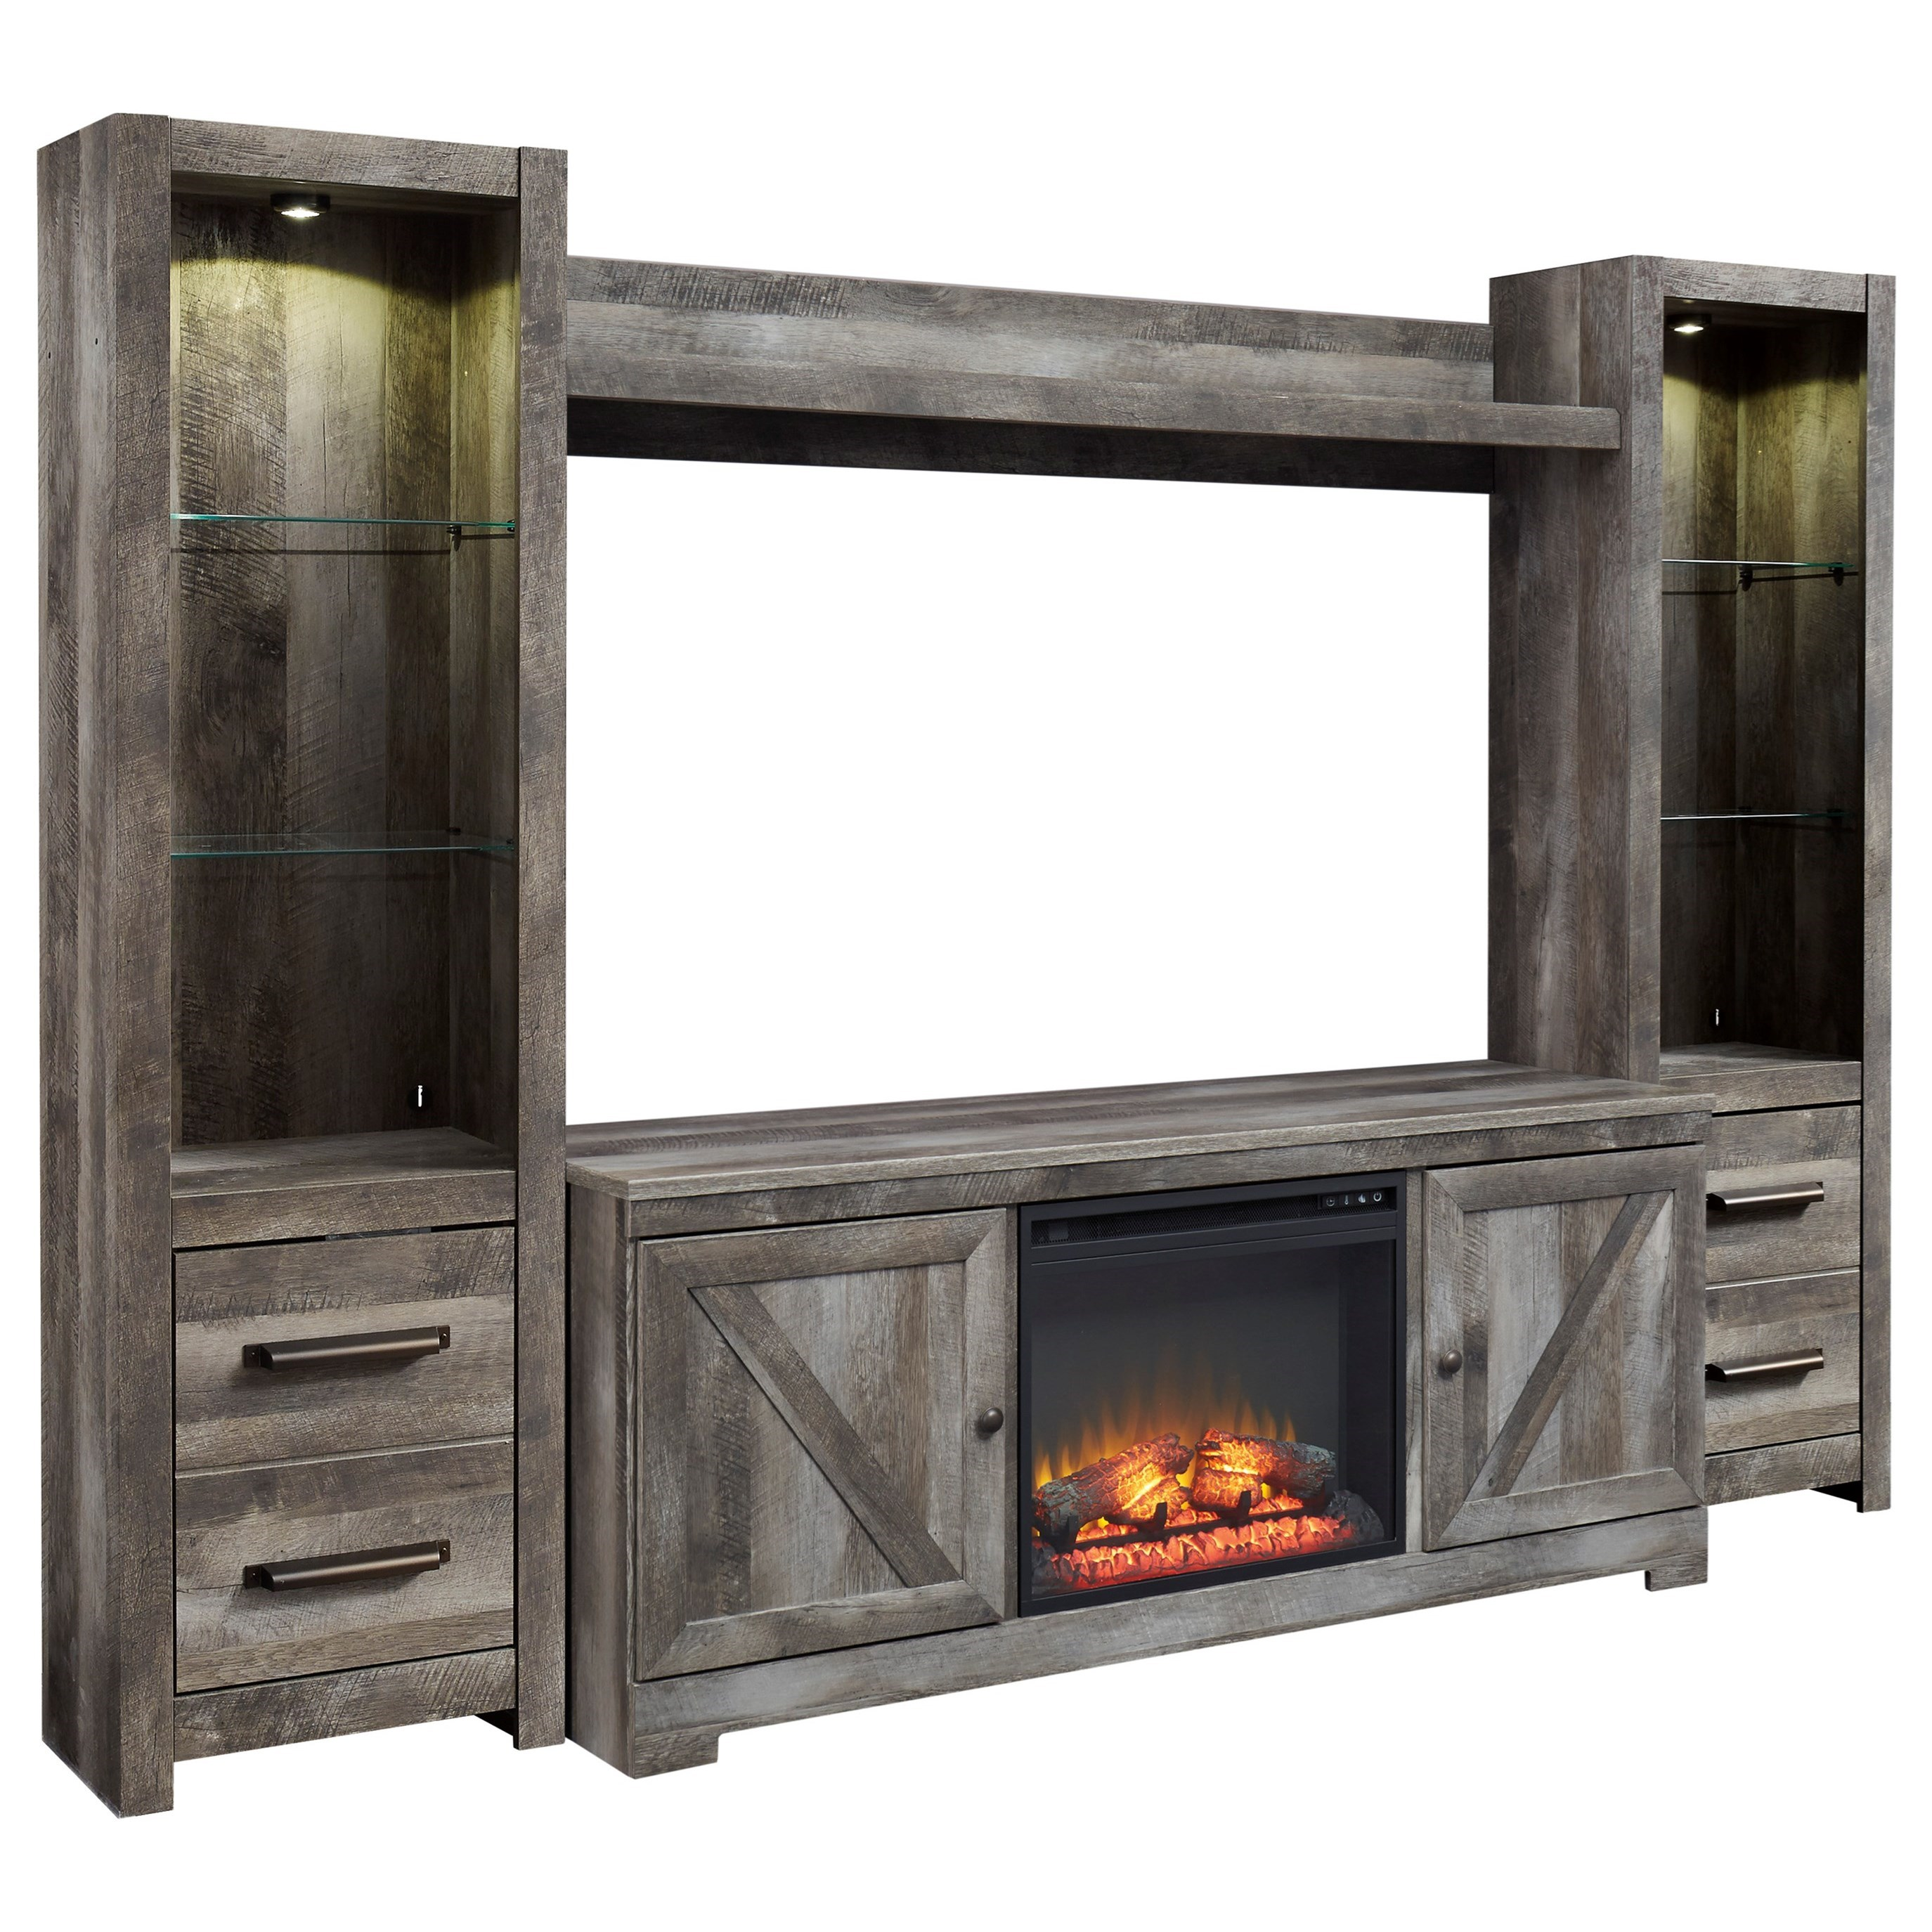 Wynnlow Wall Unit with Fireplace by Signature Design by Ashley at Furniture Barn